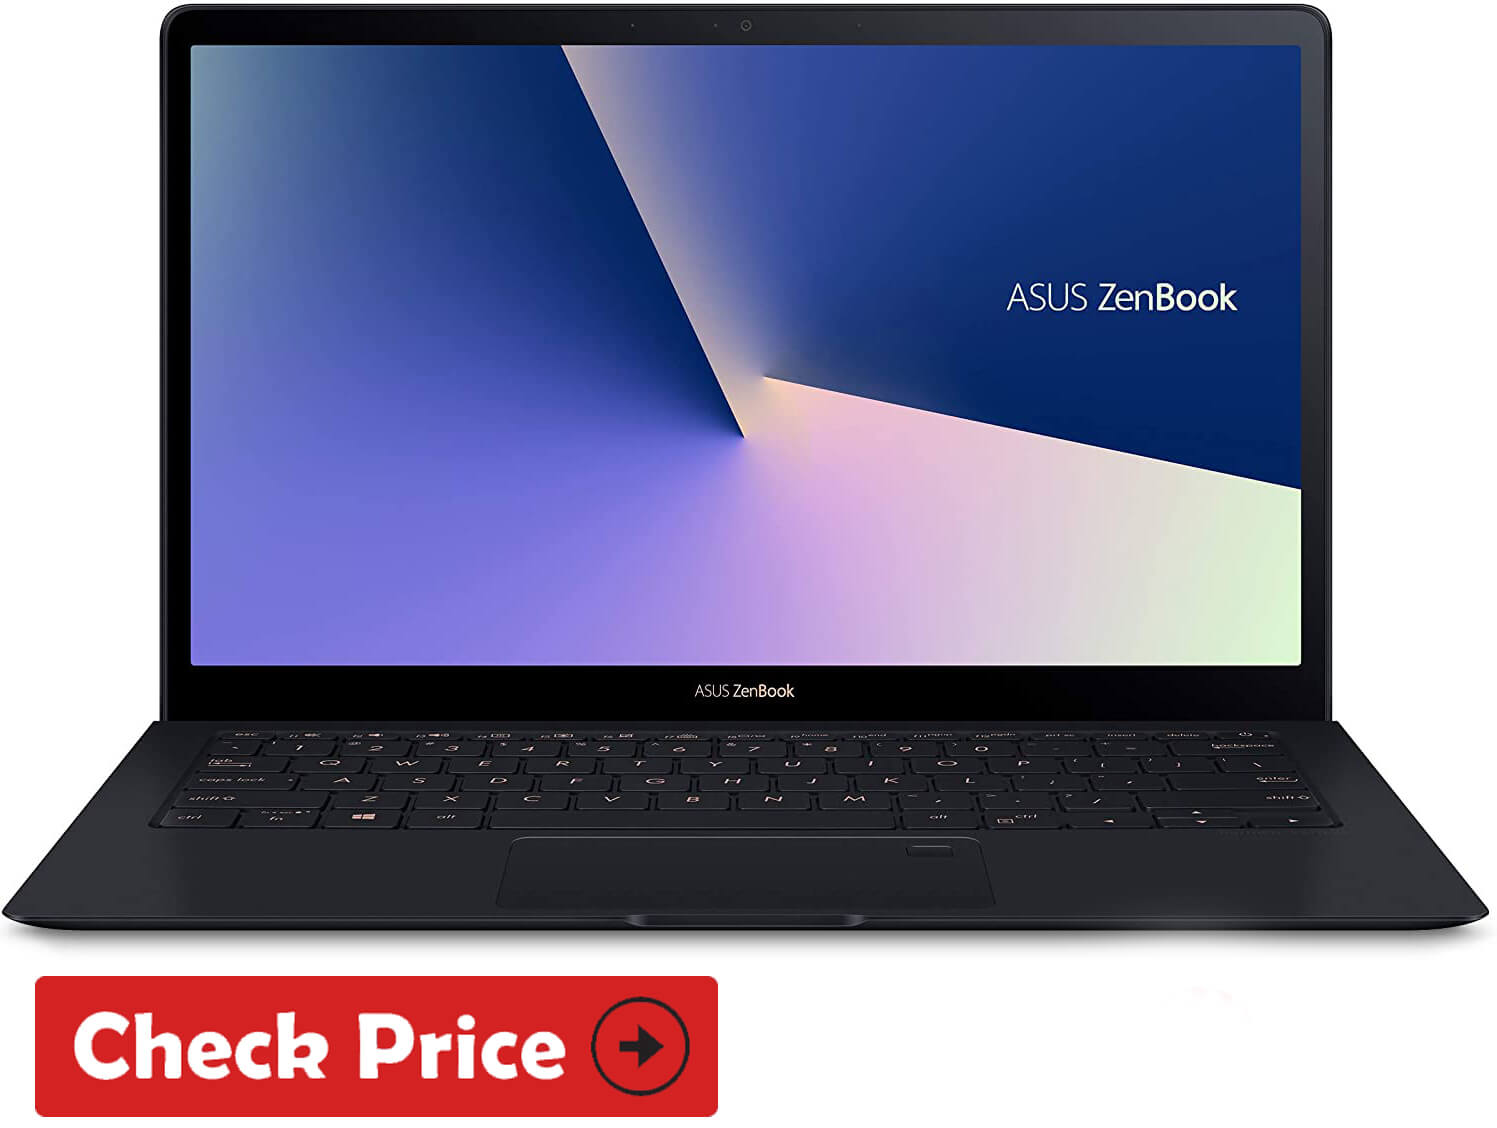 Asus ZenBook S UX391 Laptop Under 1500 Dollars